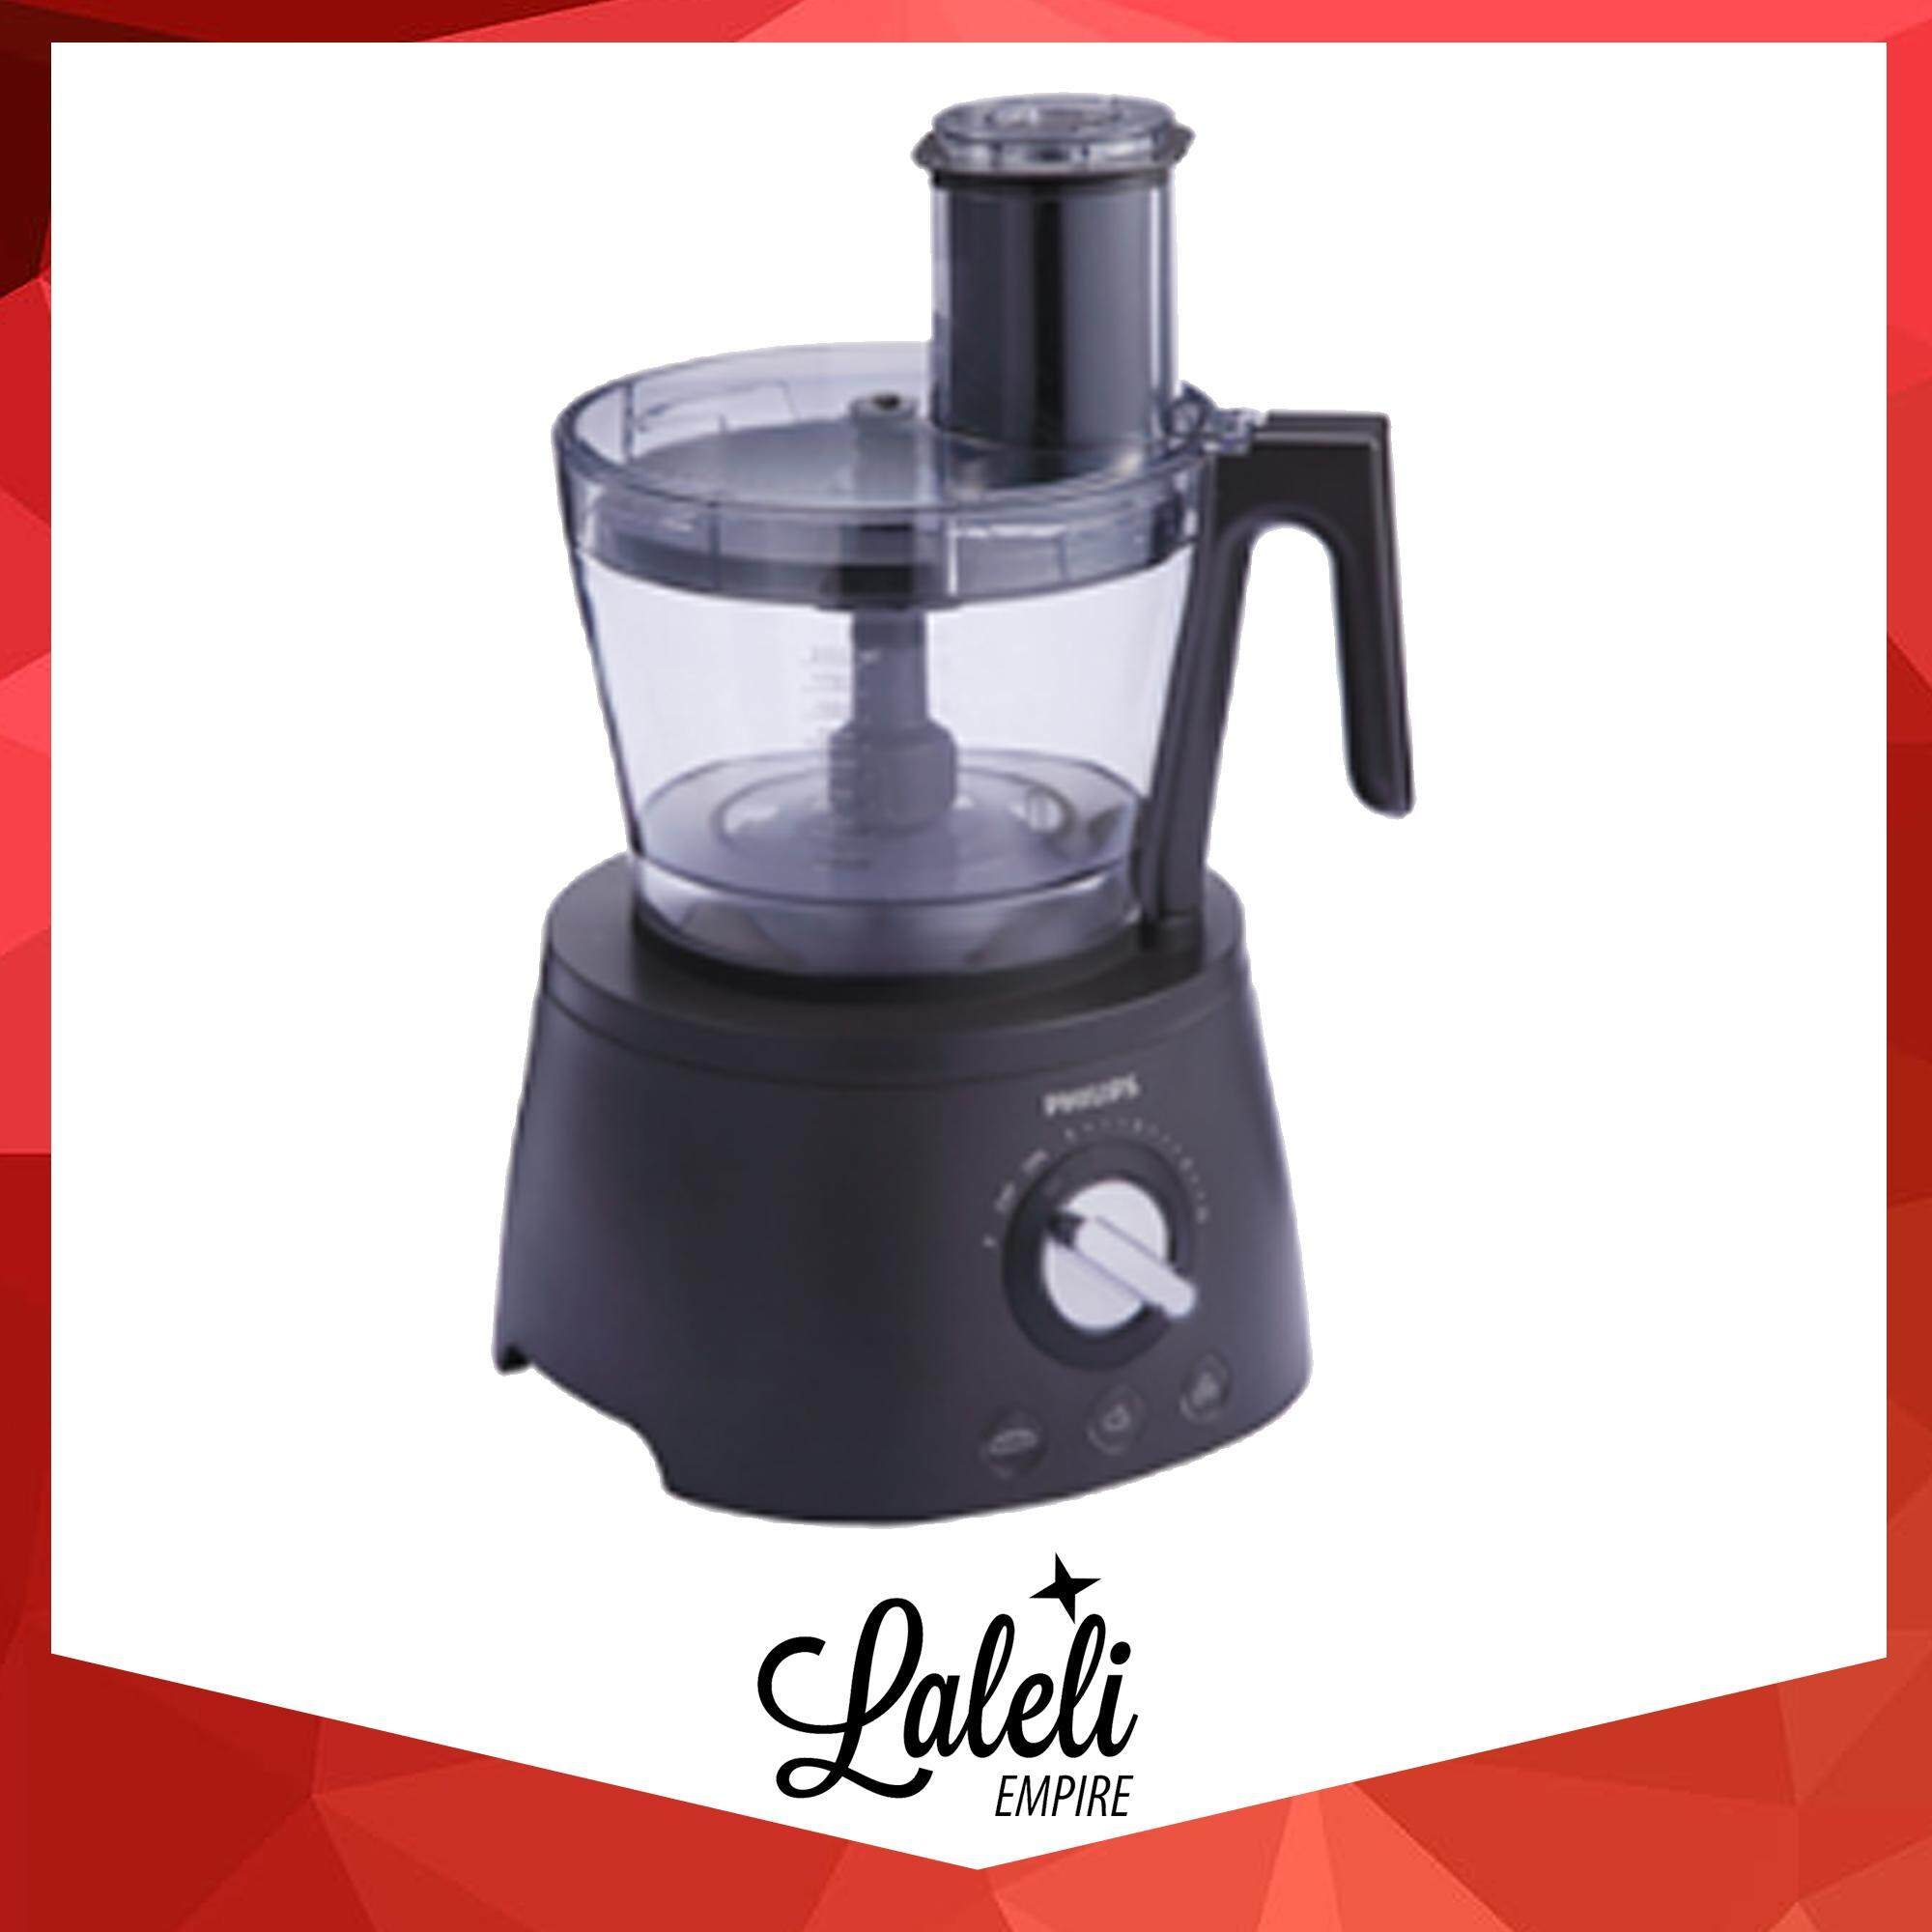 philips avance food processor price 1999 ford f250 wiring diagram buy processors at best in malaysia diszo